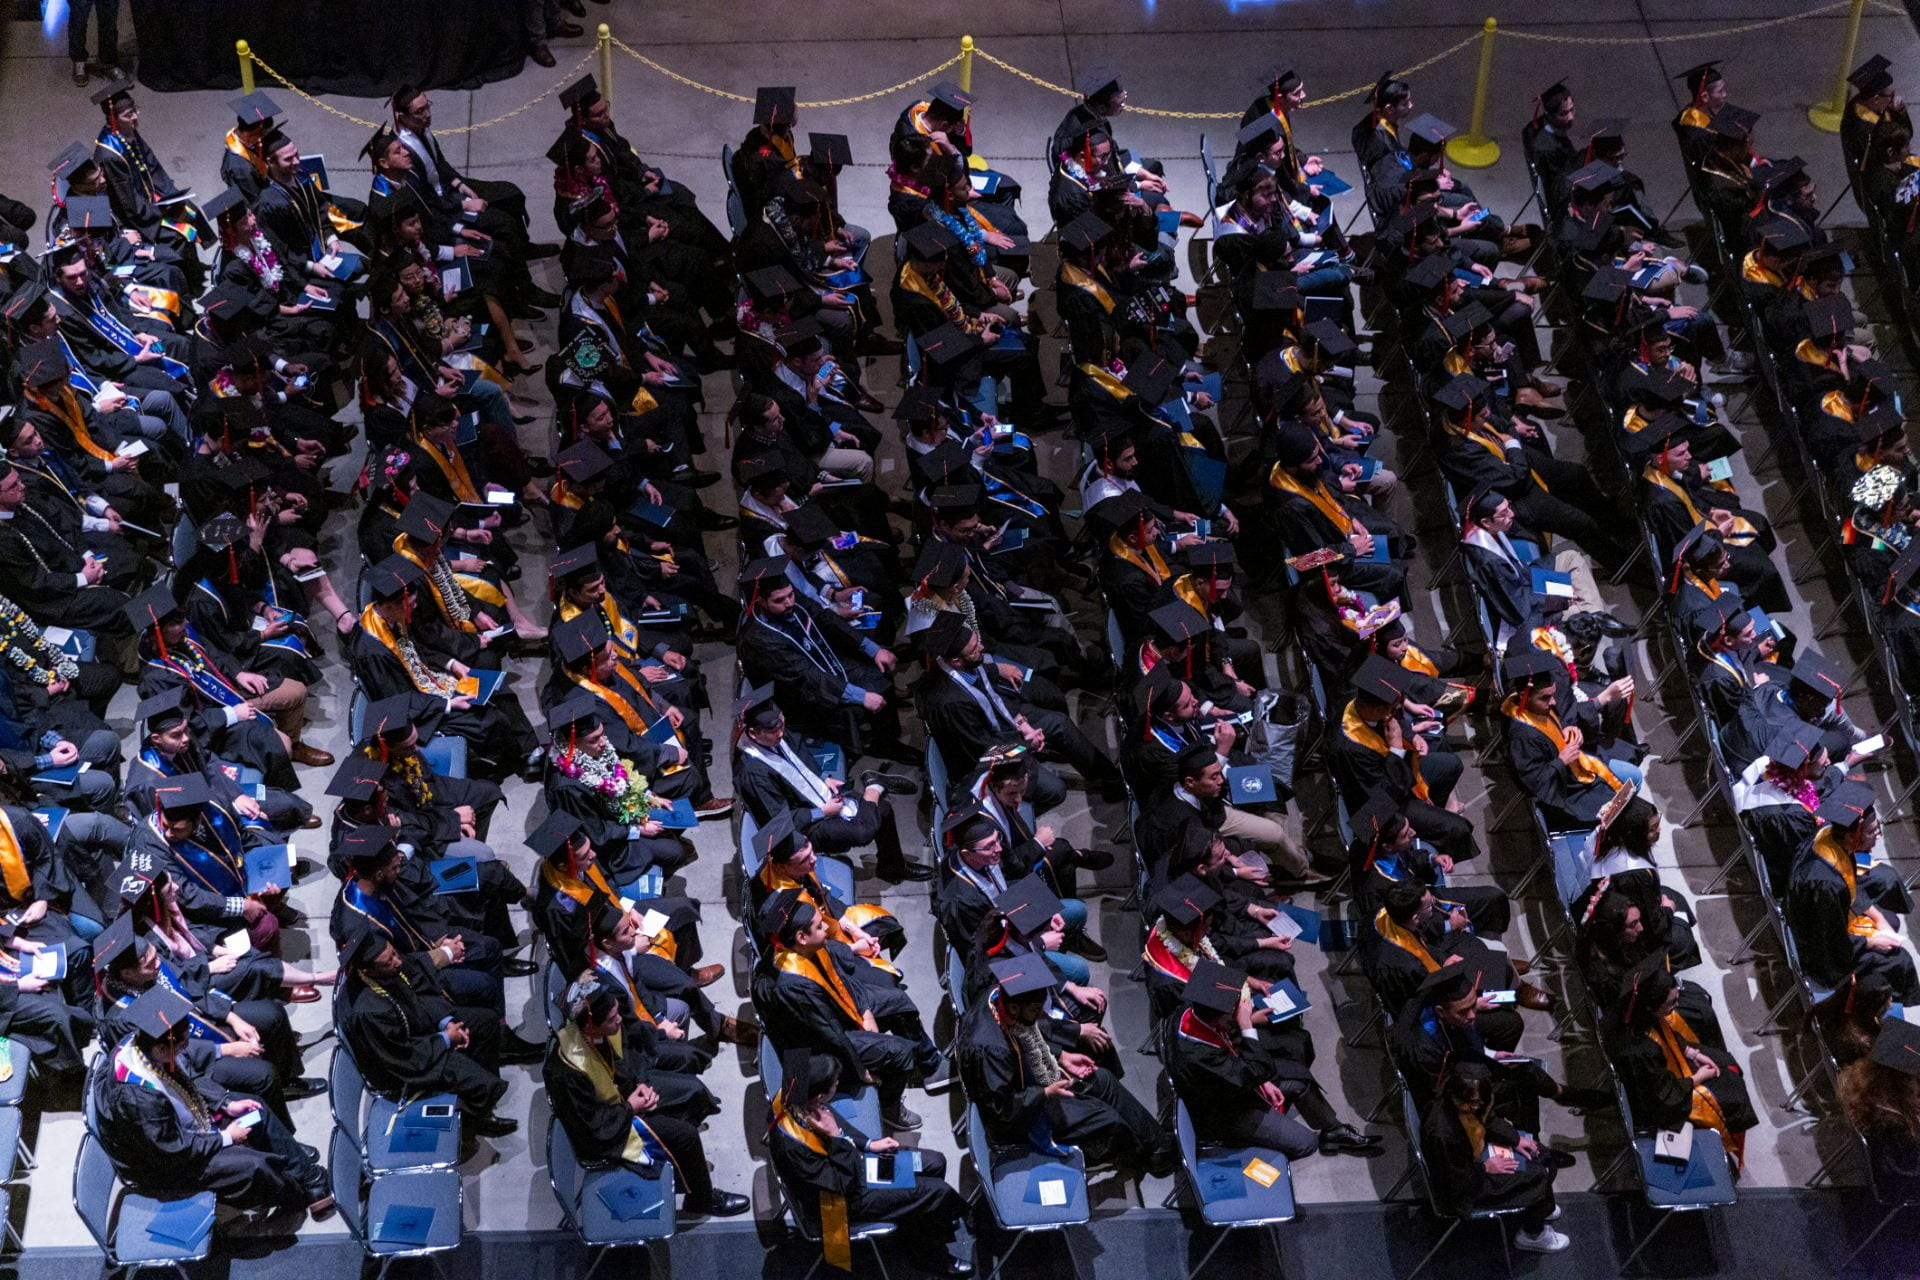 Students don their caps and gown during fall commencement in December 2018. Photo by David Schmitz